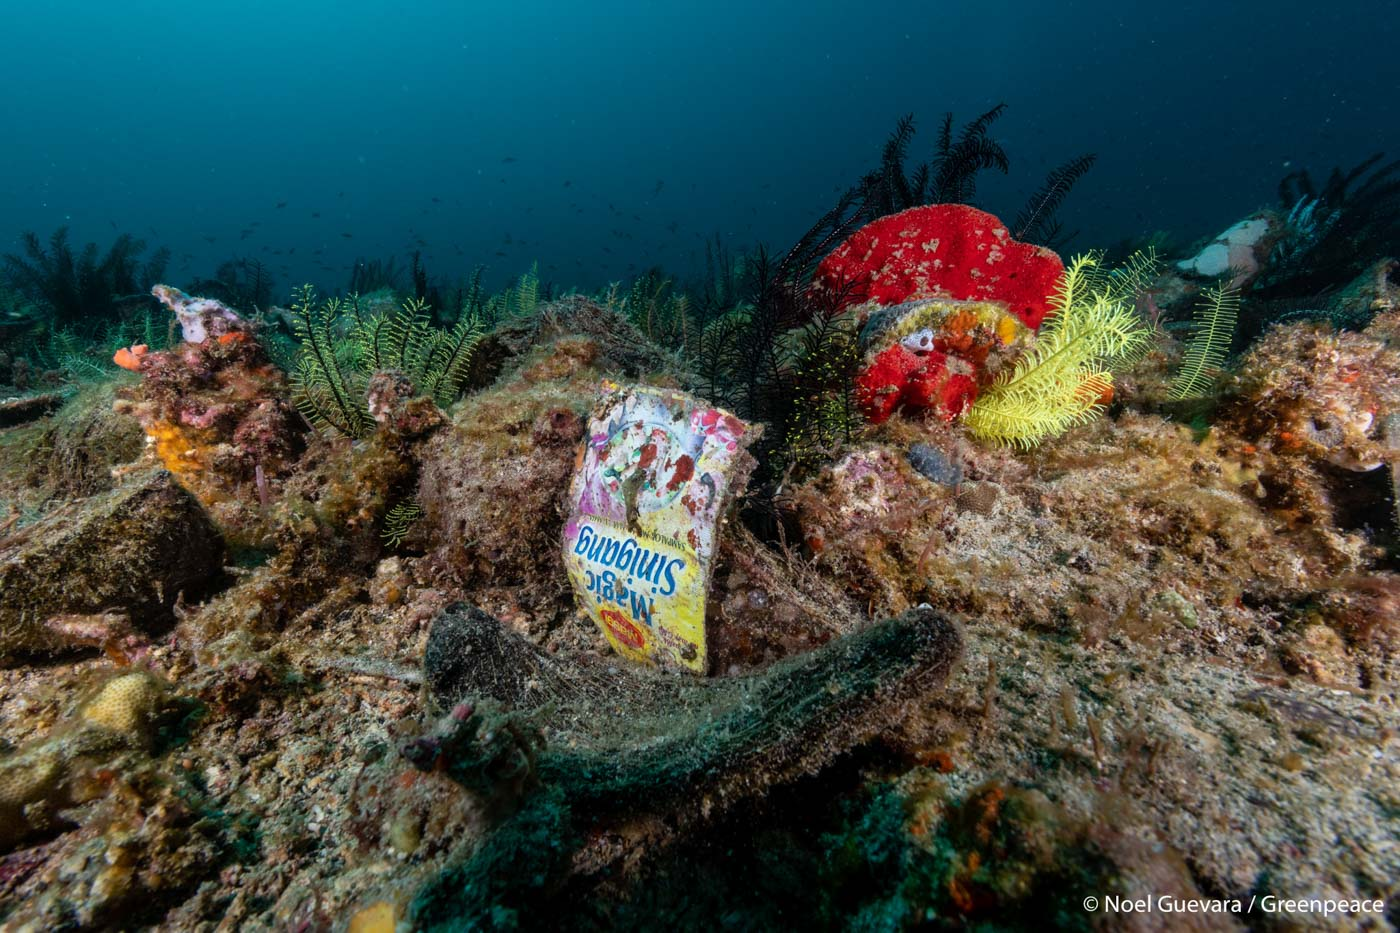 PLASTIC IN THE SEA. Even sachets of food seasoning can be found along the Verde Island Passage on March 7, 2019. Photo by Noel Guevara/Greenpeace